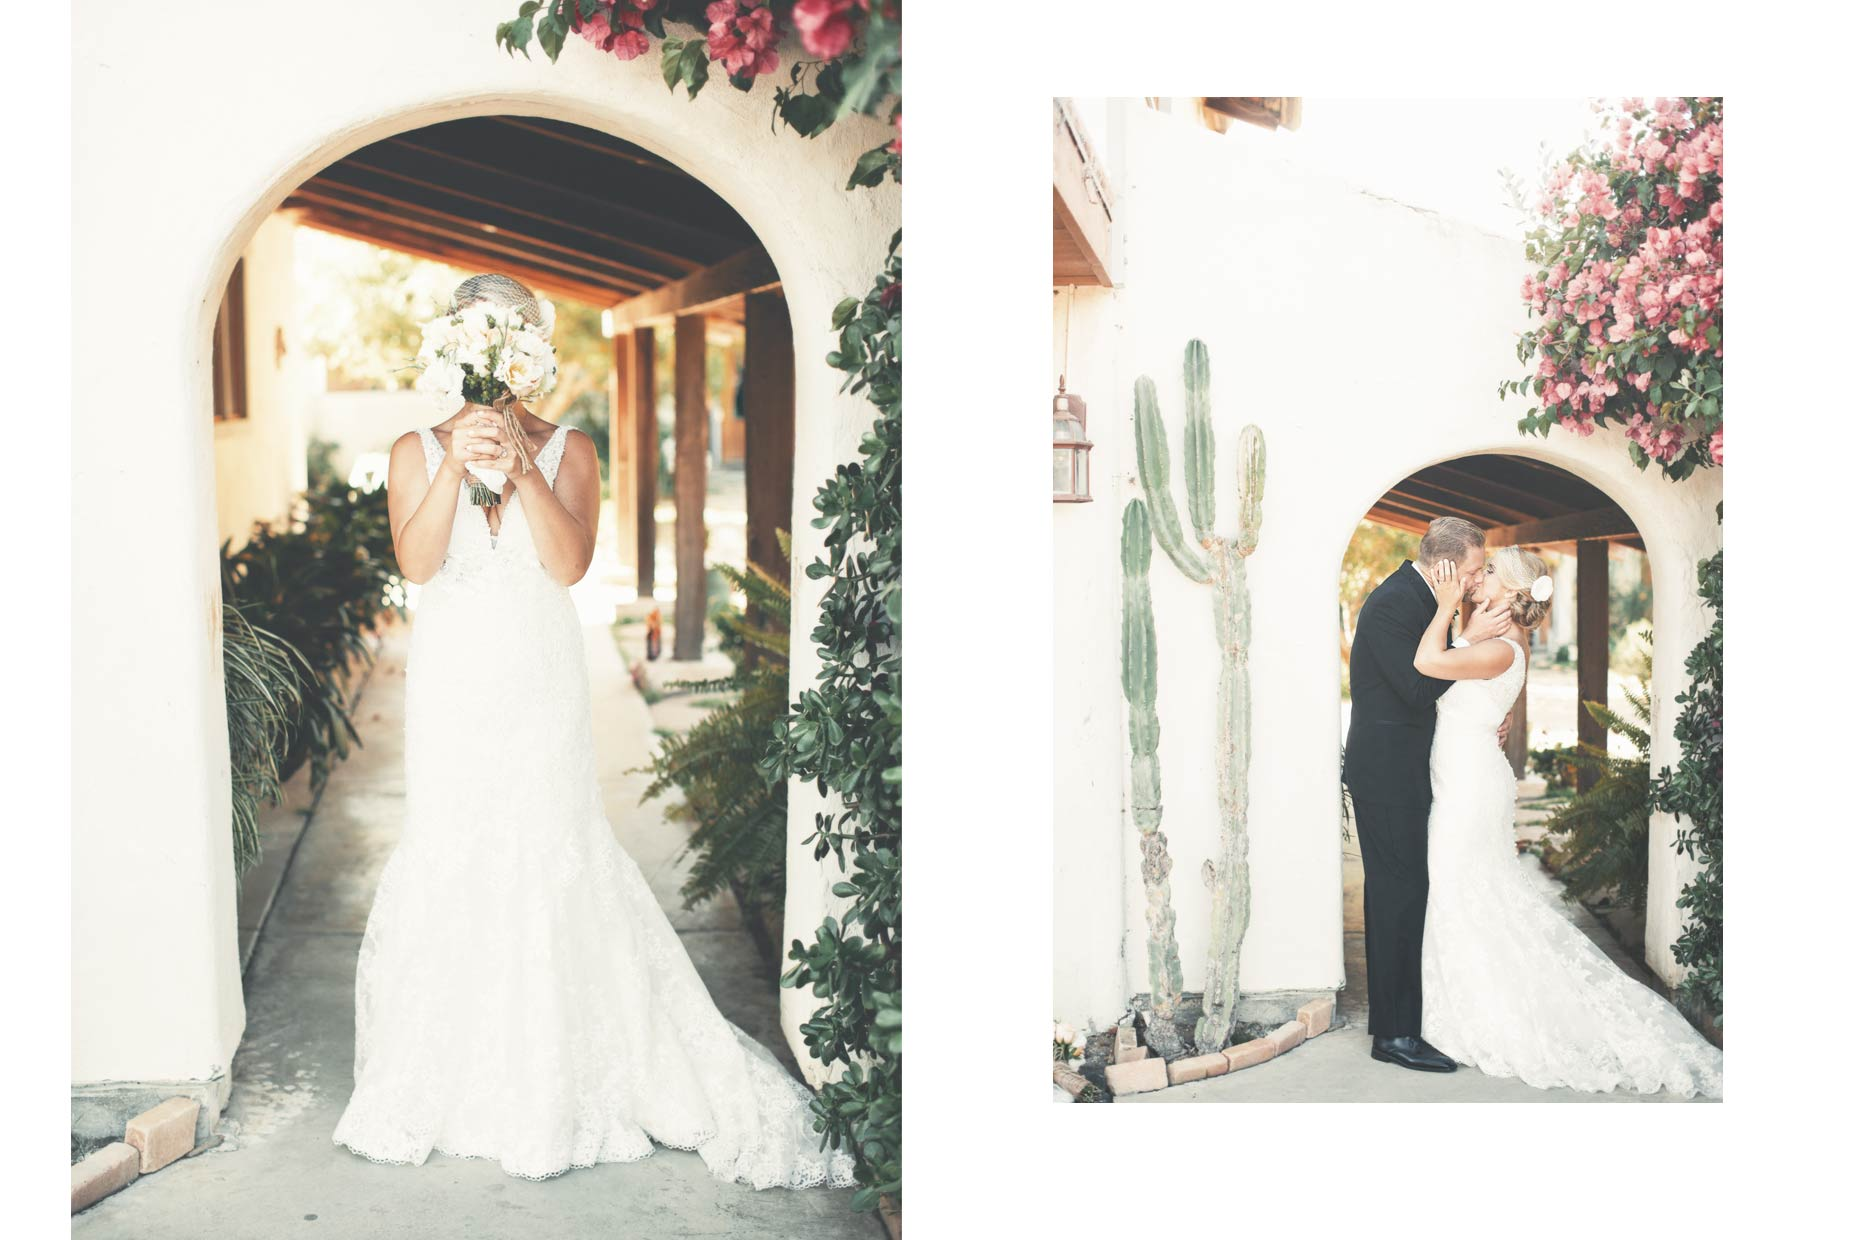 Palm springs wedding photographer Pierre-o